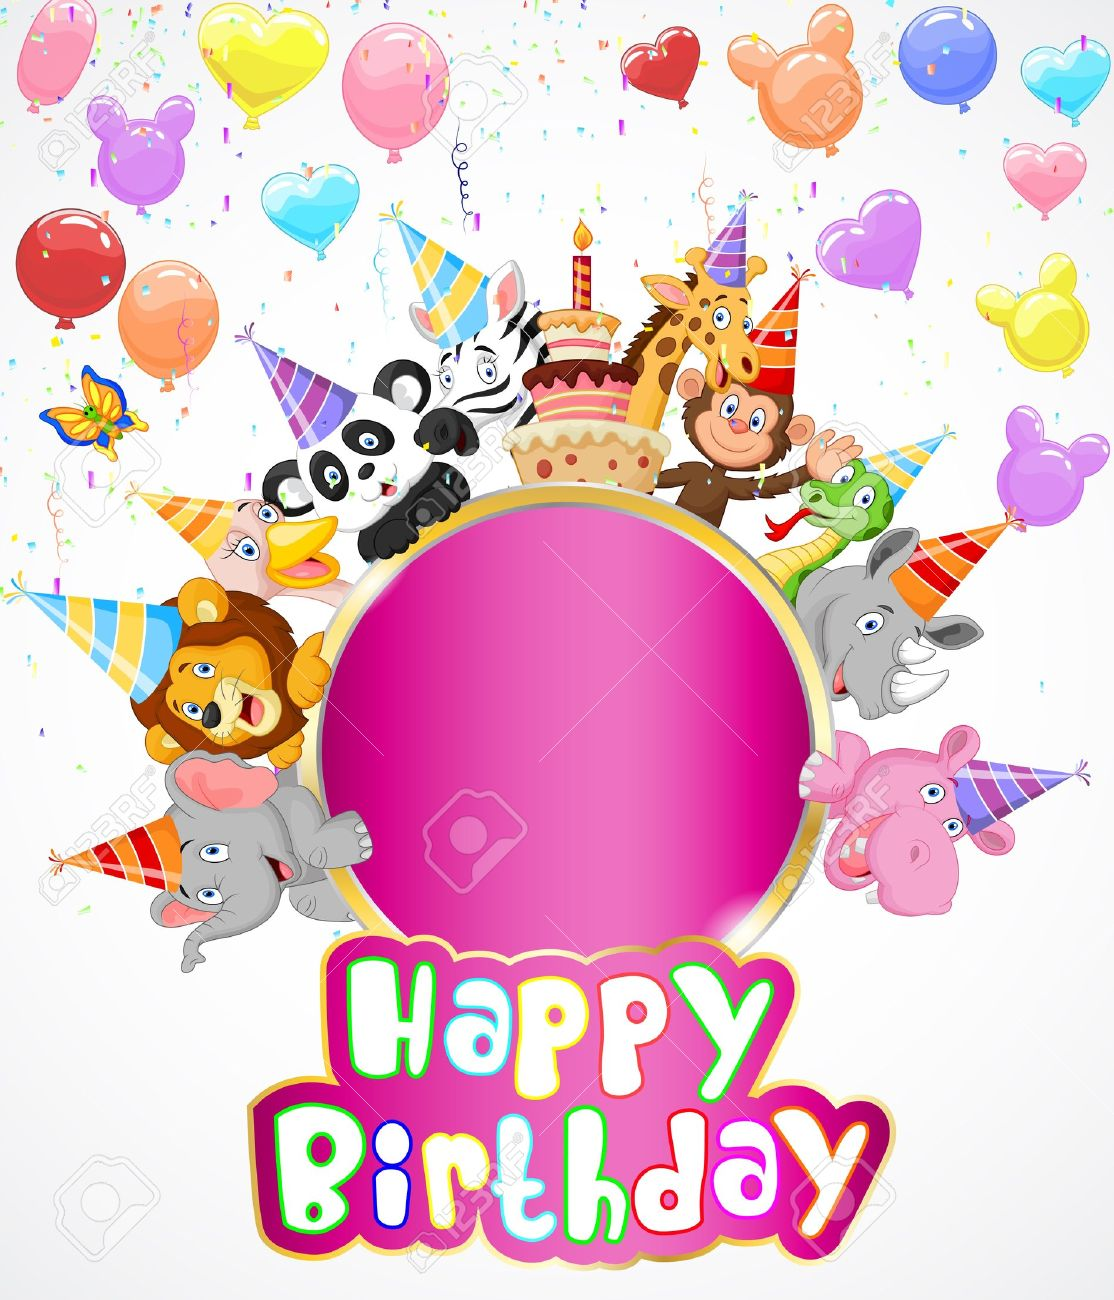 297,035 Birthday Invitation Stock Illustrations, Cliparts And ...